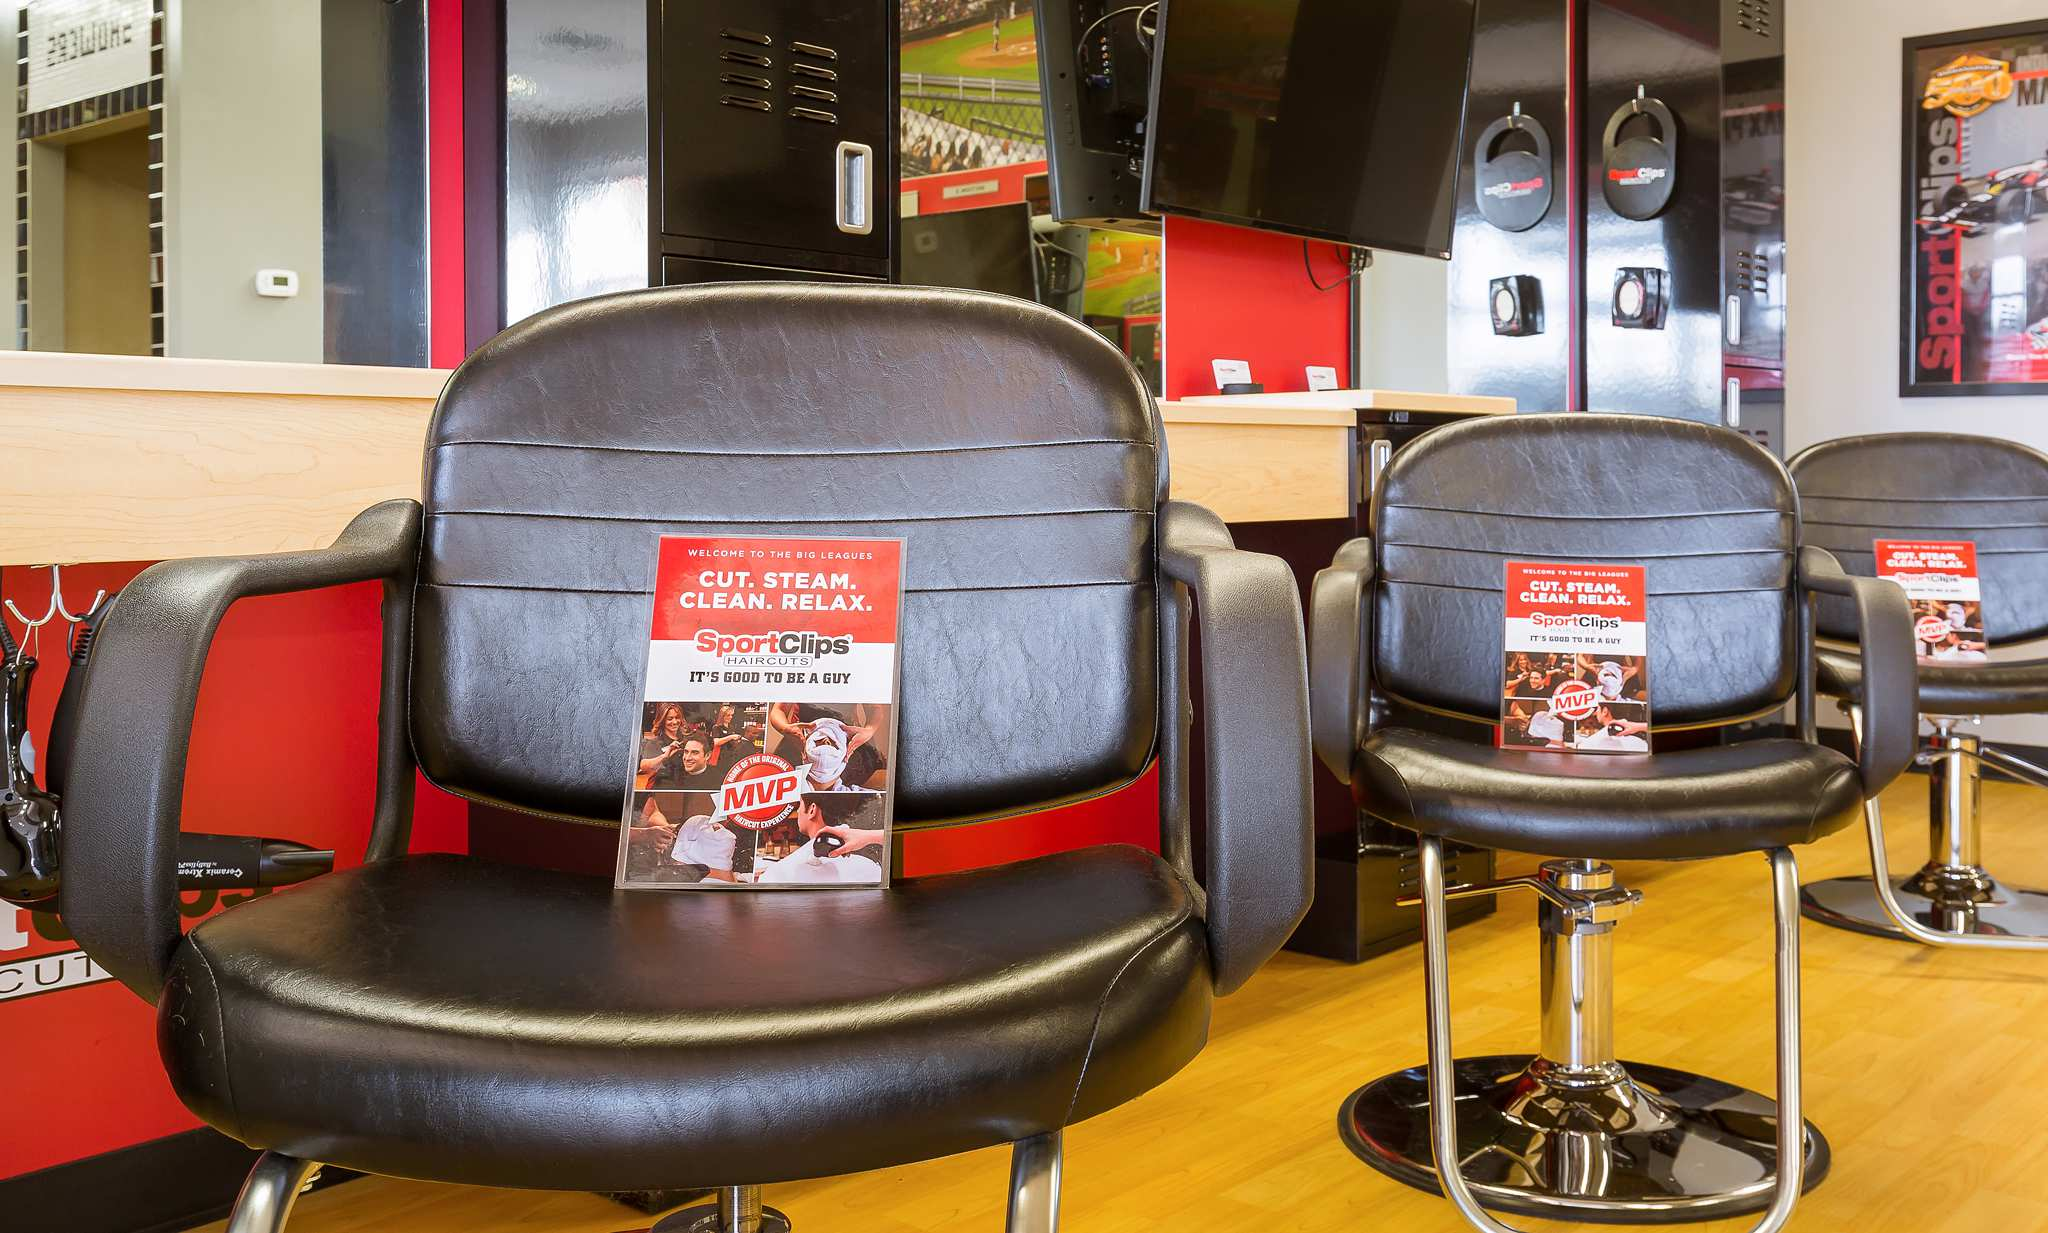 Sport Clips Lincolnshire Business Listing Photos for Google Maps Optimization